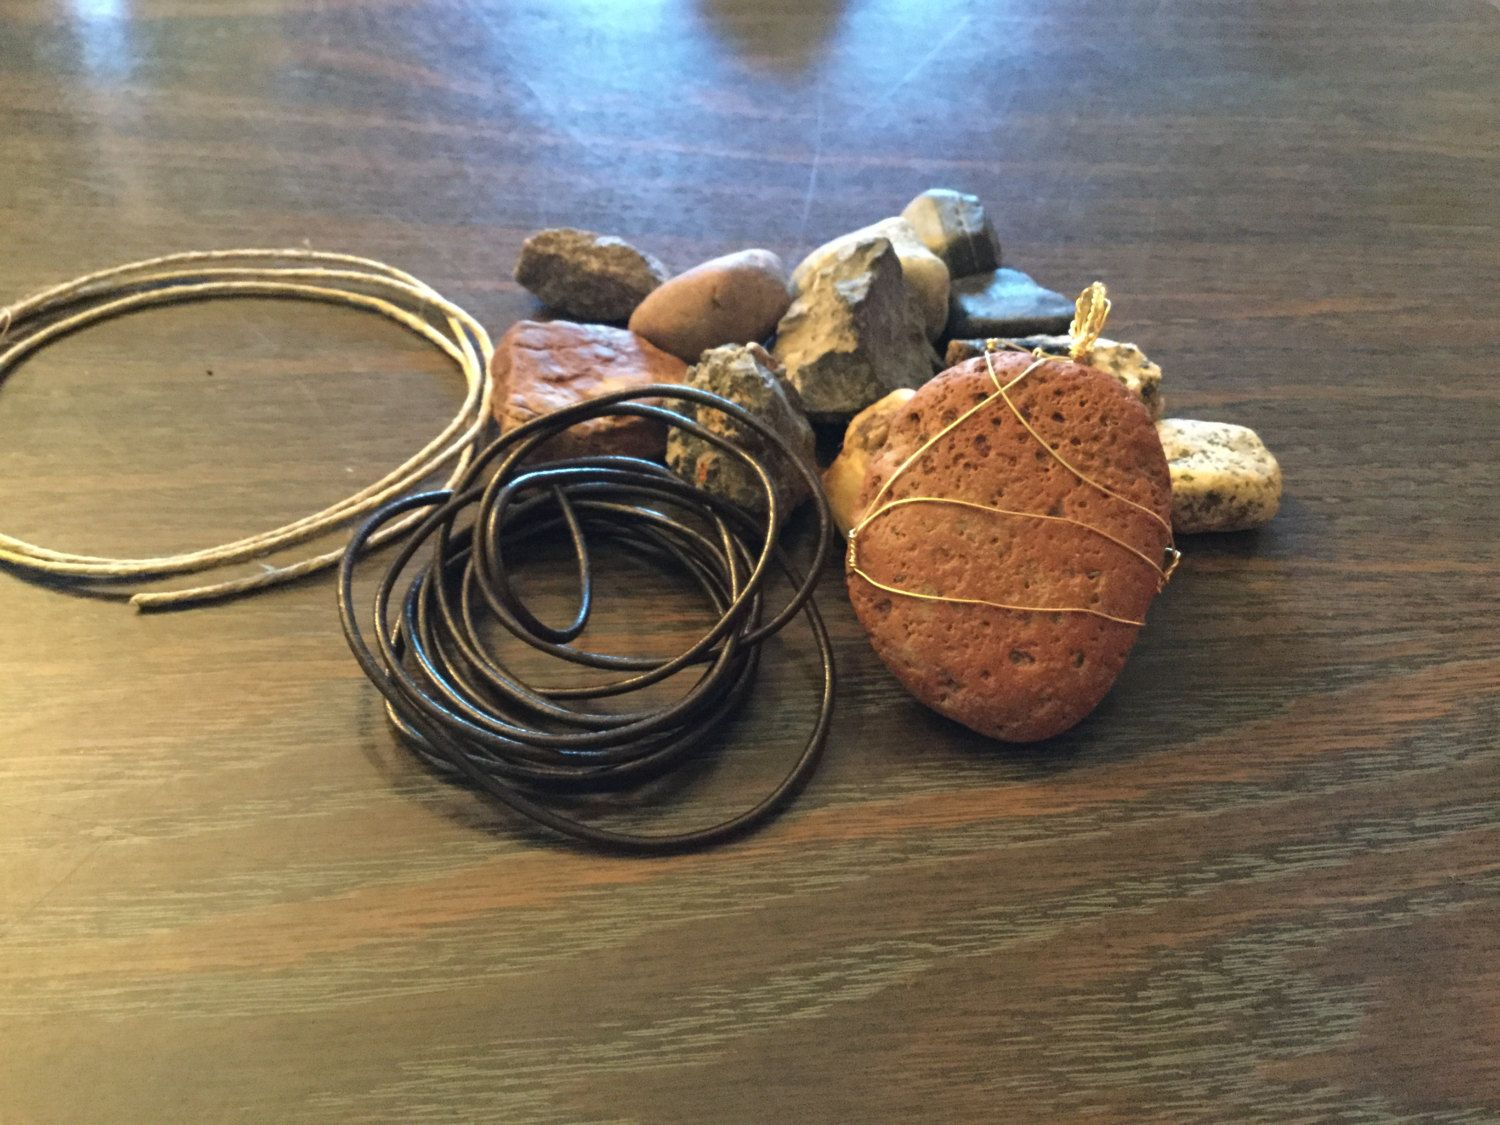 Copper Wire With Rocks In Them - WIRE Center •